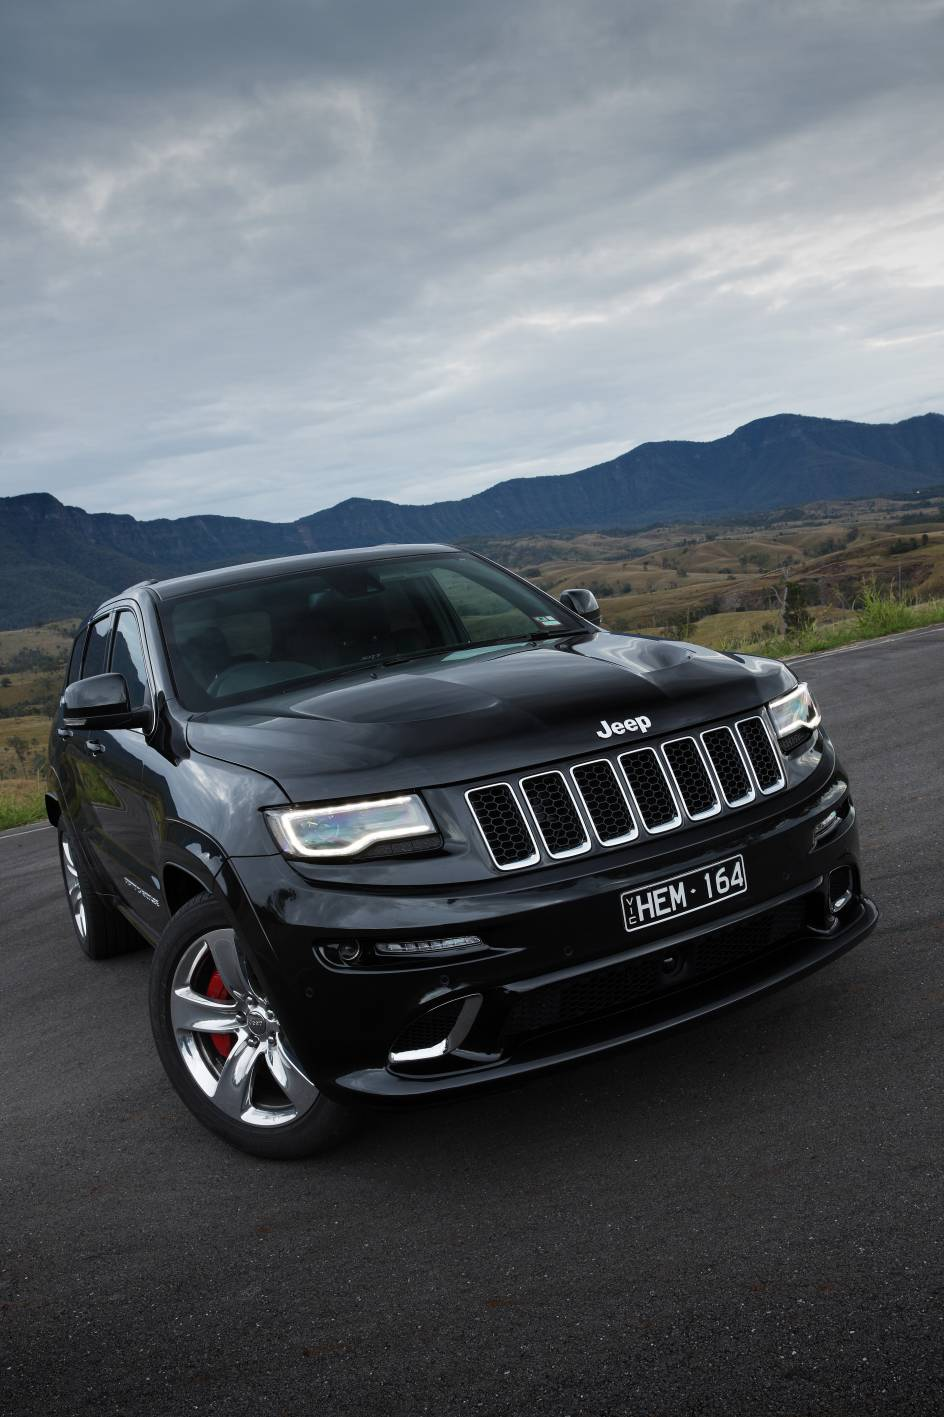 2014 Jeep Grand Cherokee SRT d.jpg